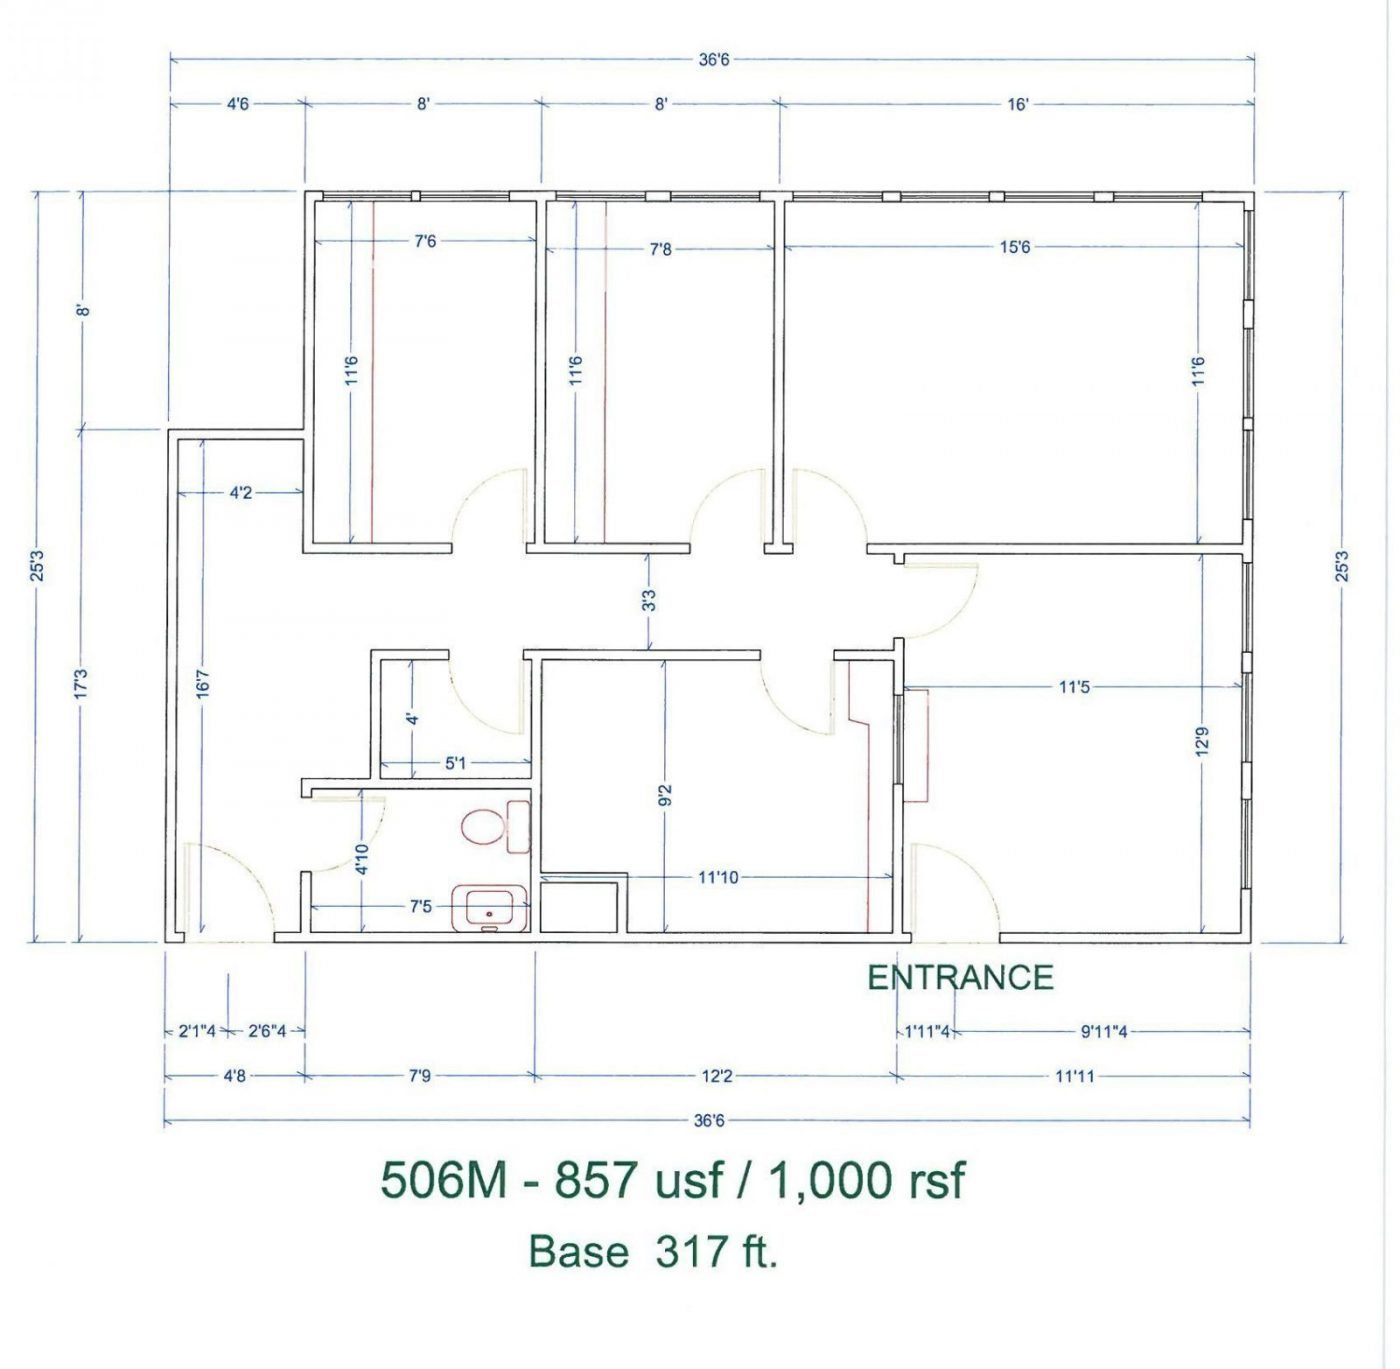 Floor Plan for unit 506M at 20905 Greenfield Rd - 5th Floor Southfield, MI 48075